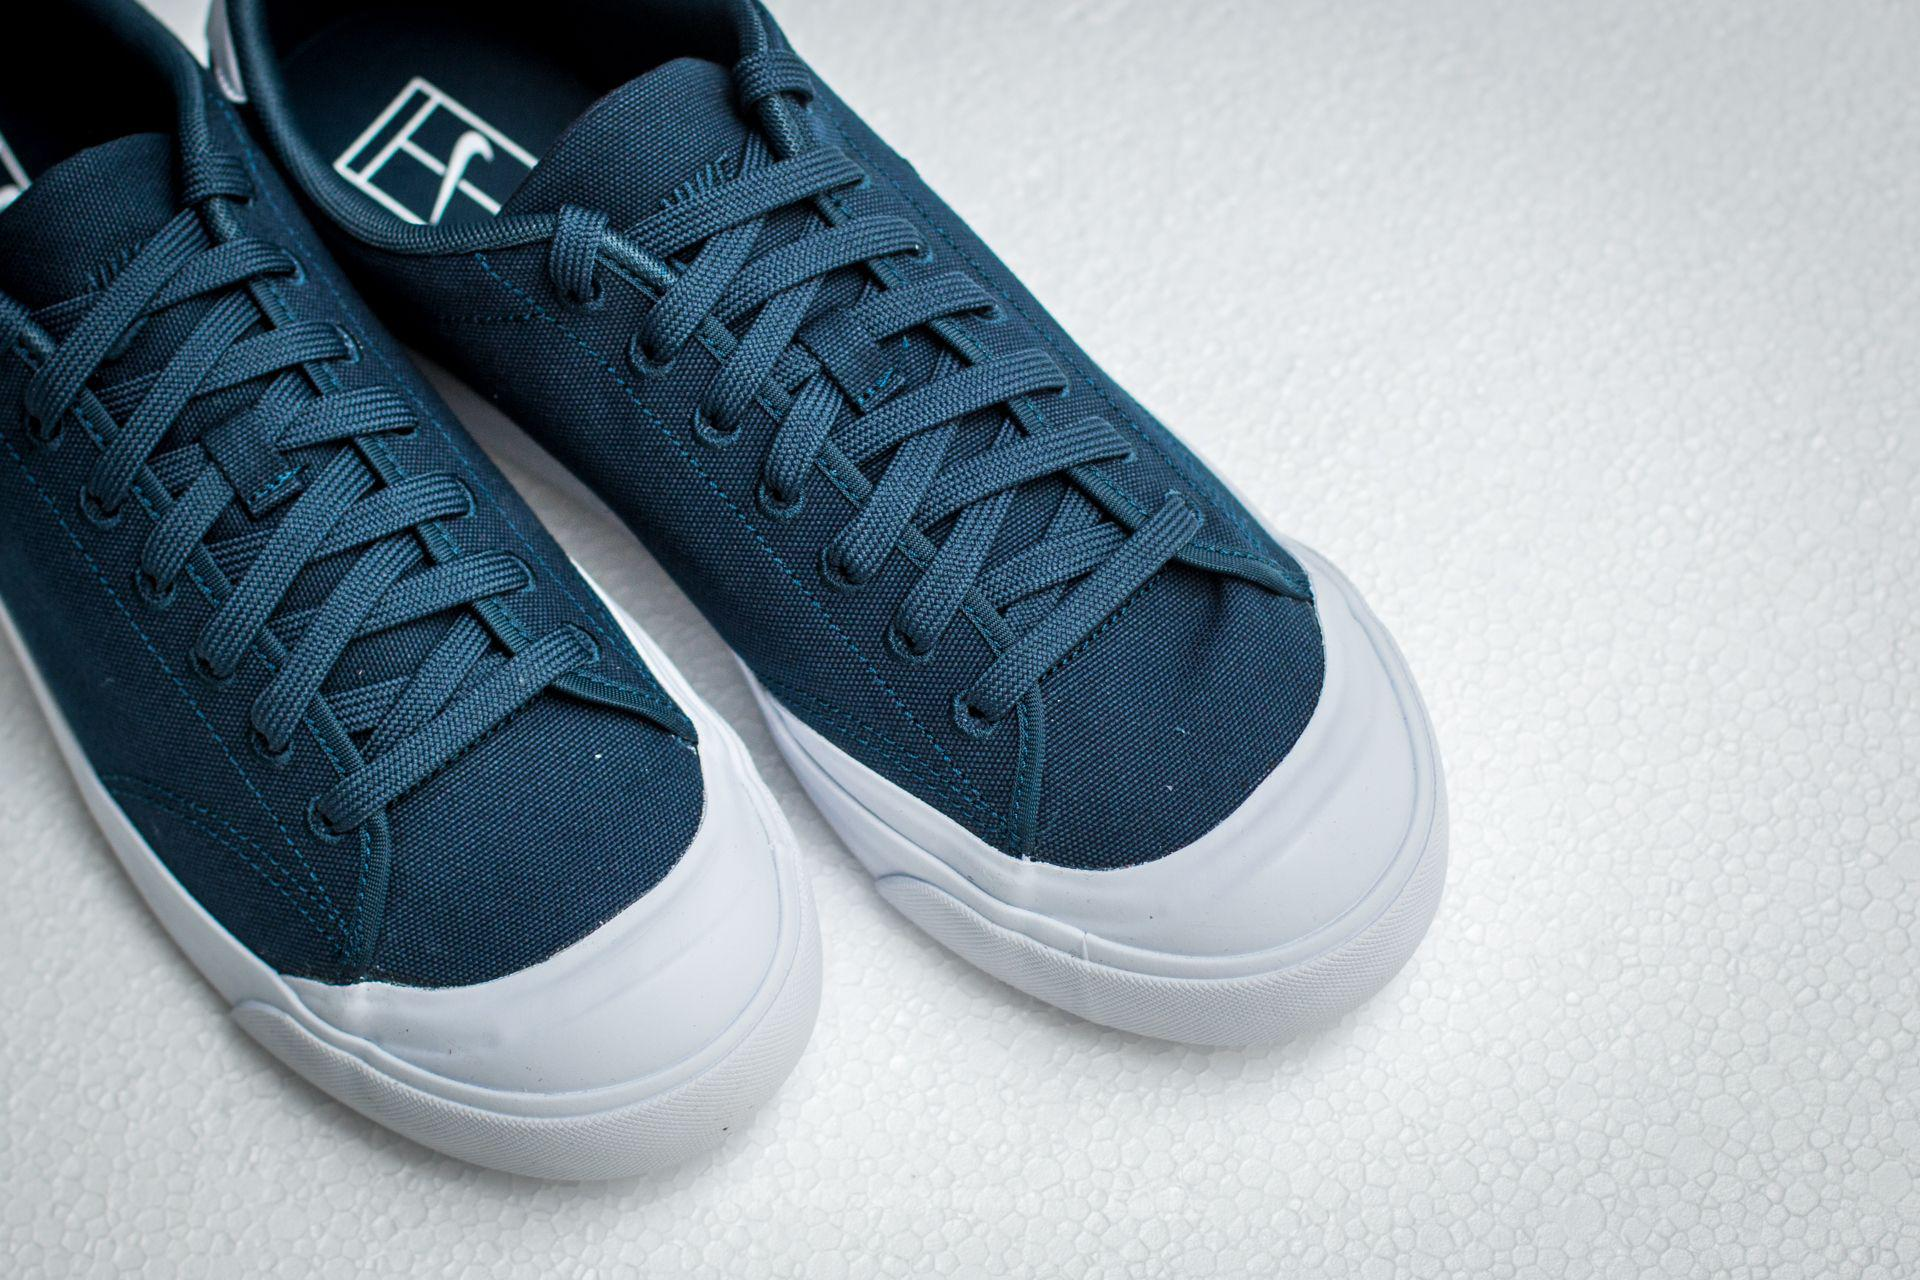 f8ecc1d1253 ... italy lyst nike all court 2 low cnvs armory navy armory navy white in  45076 31f64